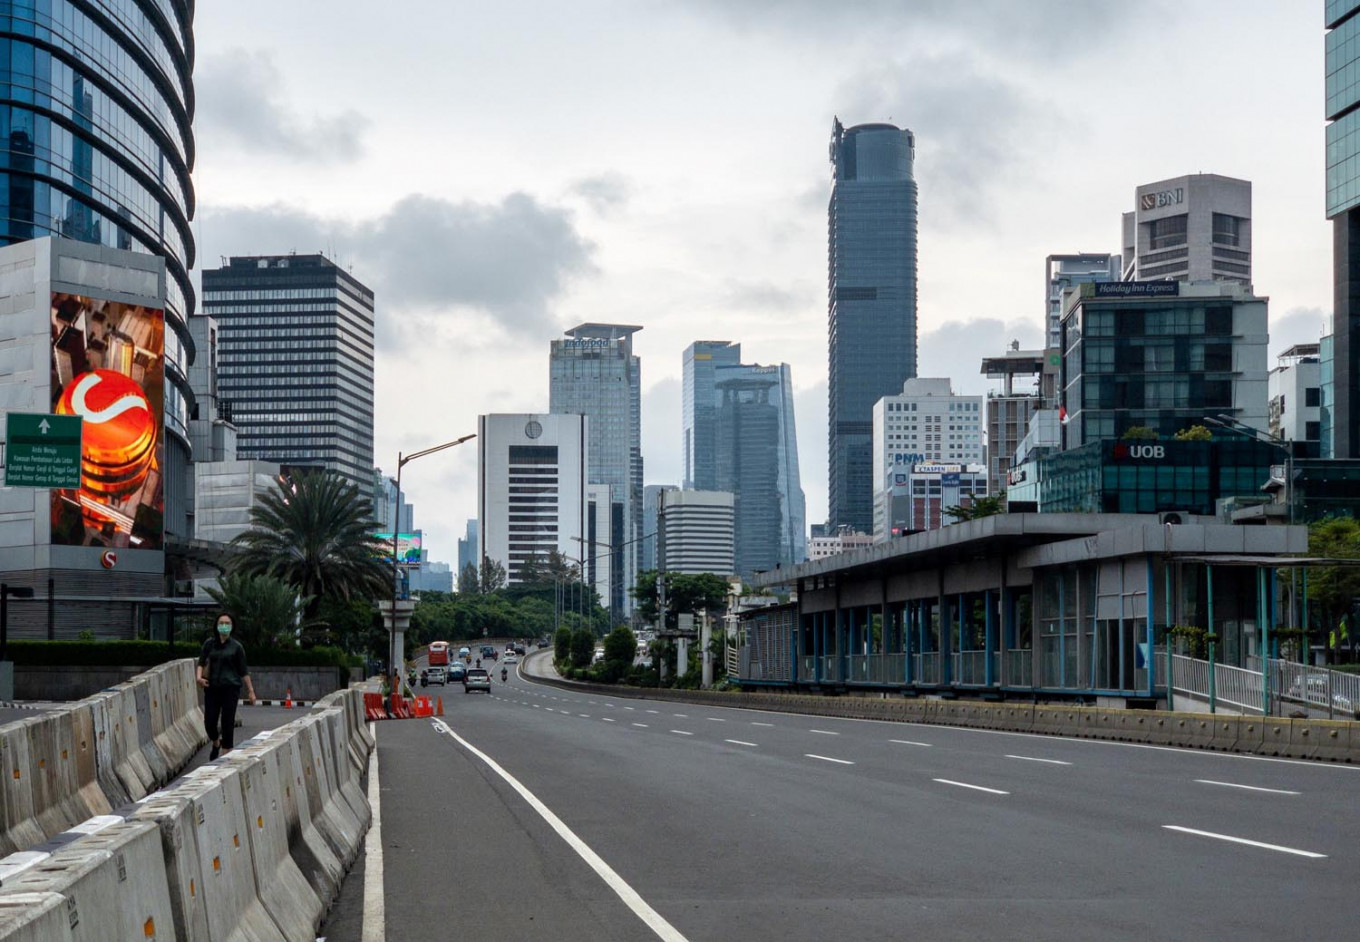 Foreign entry into Indonesia tightened over COVID-19